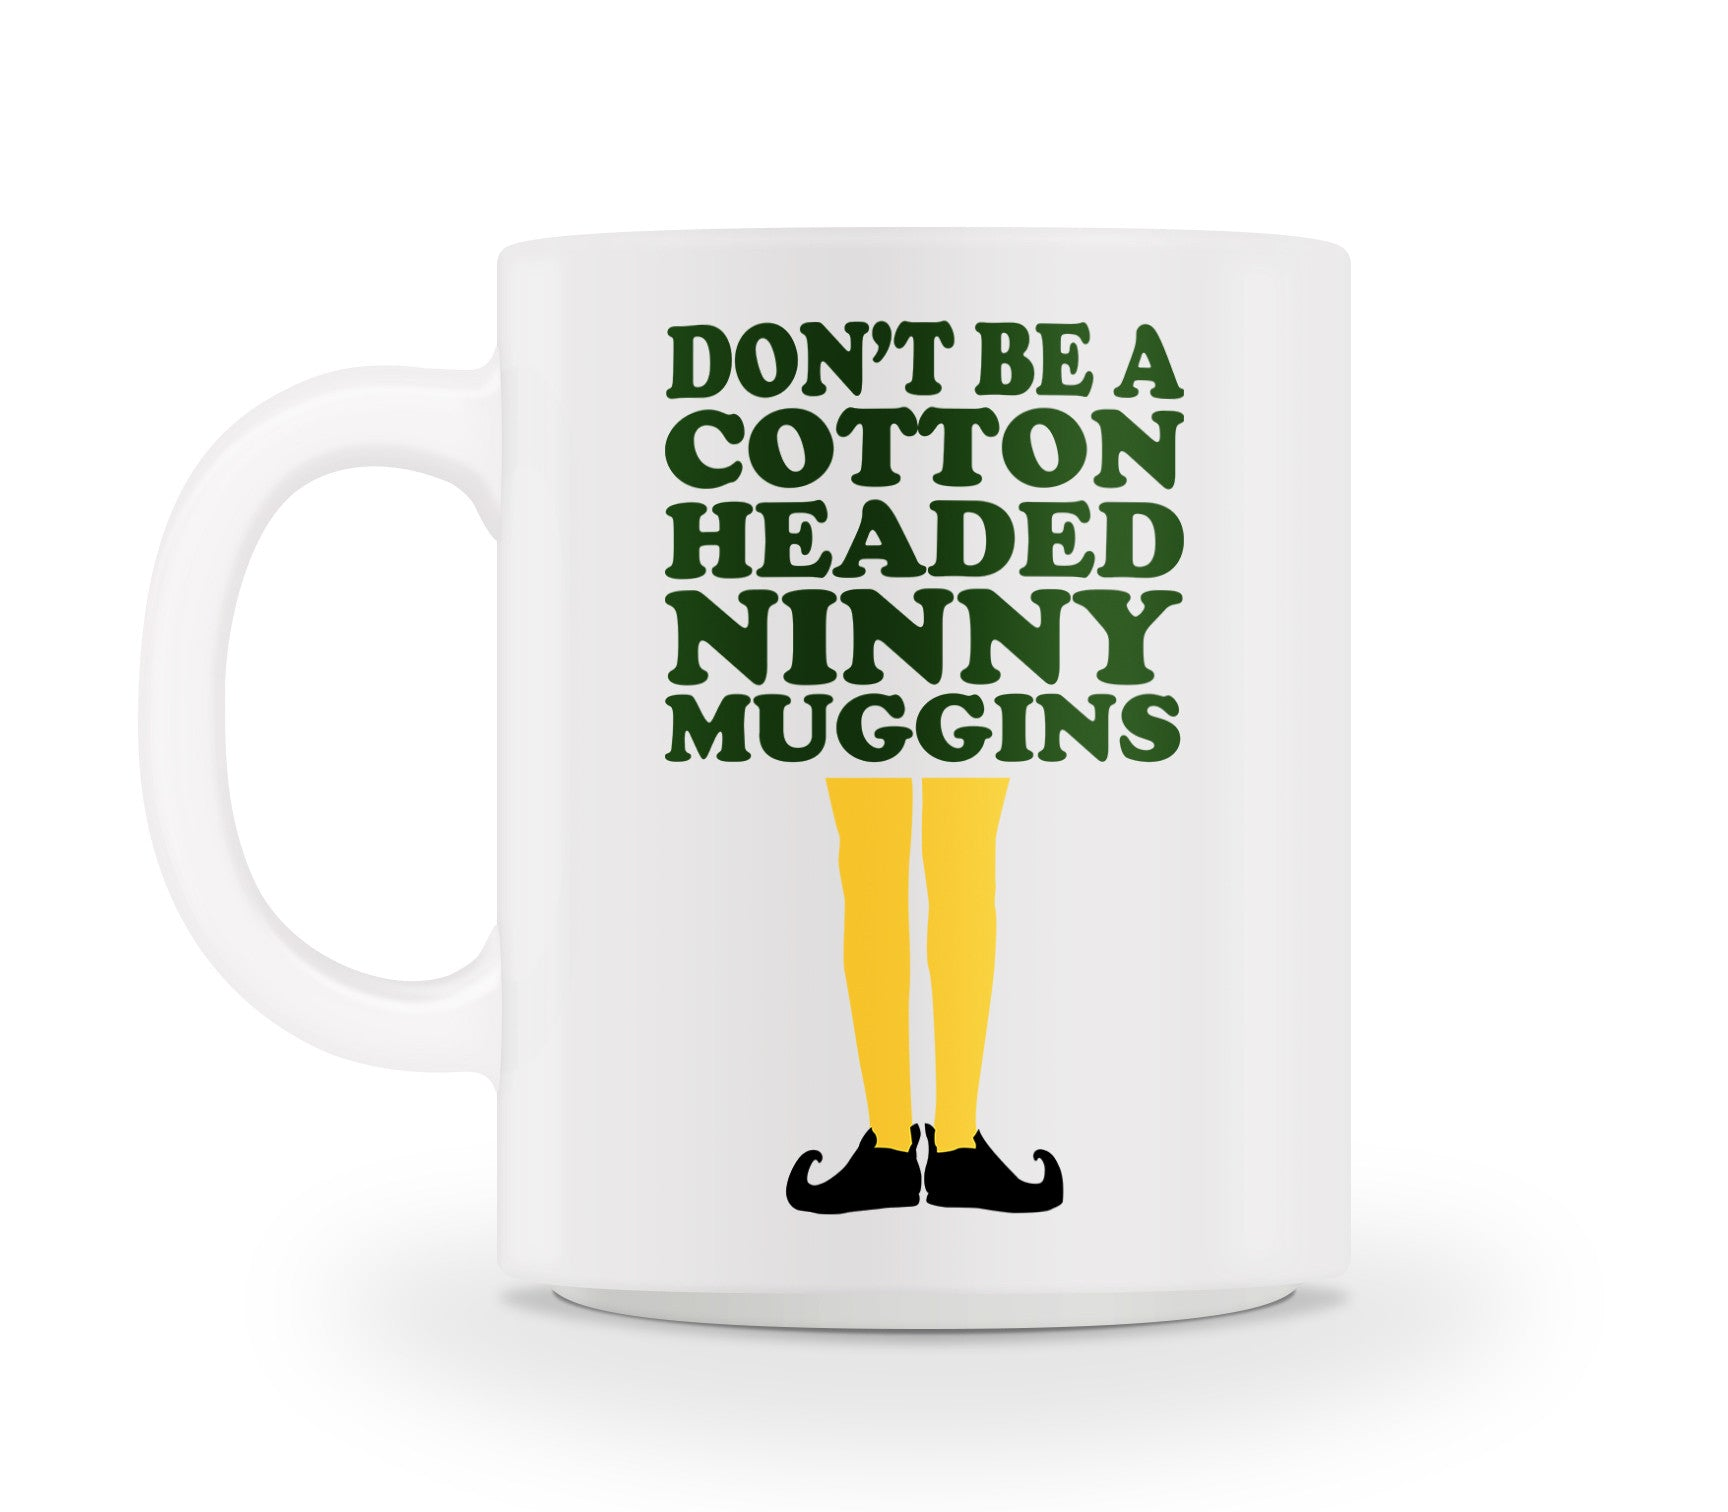 Don't be a cotton headed ninny muggins!